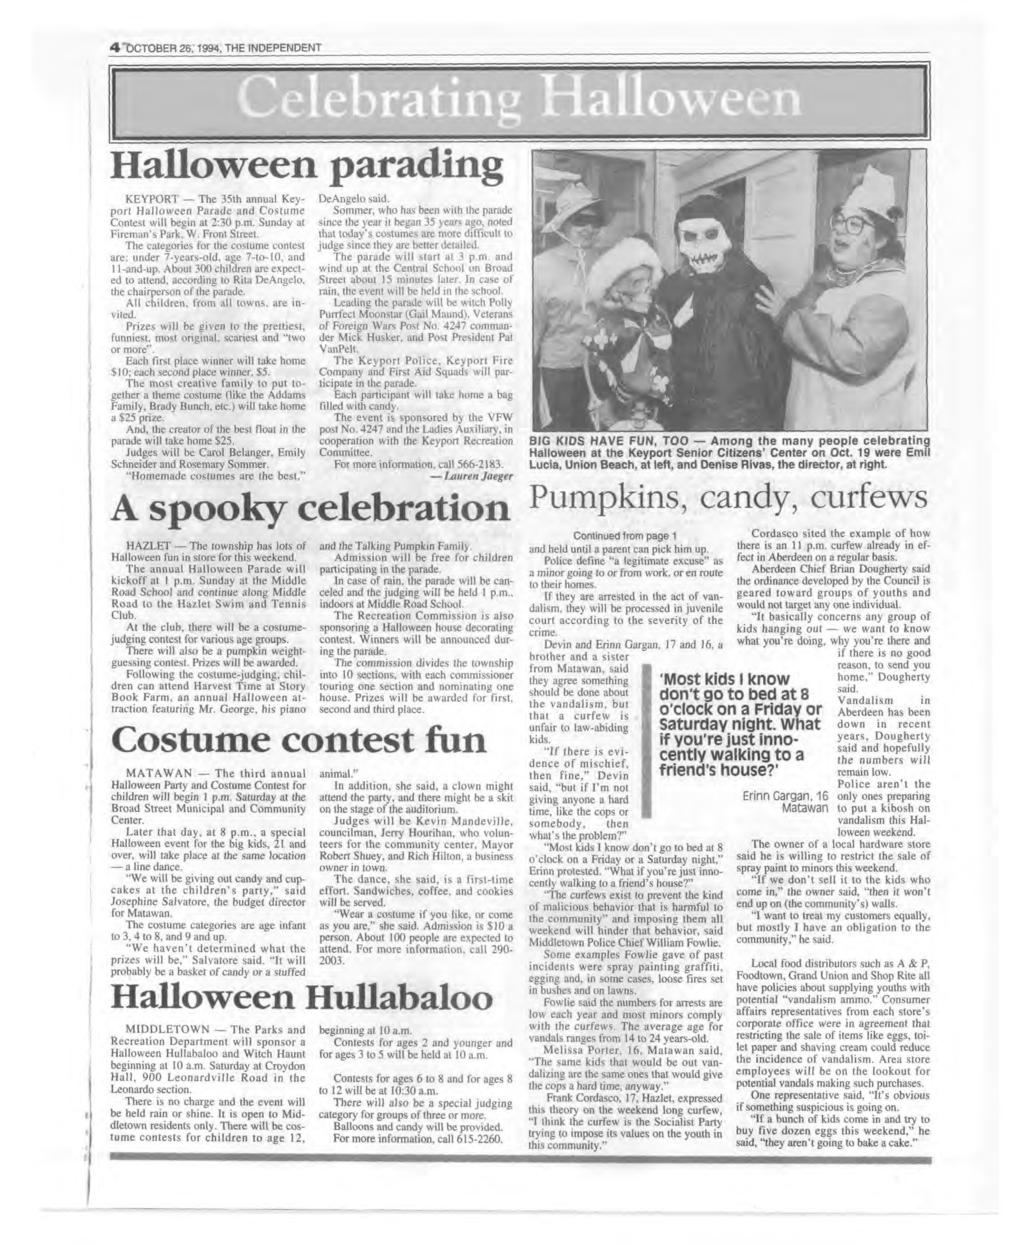 "4 ""OCTOBER 26; 1994, THE NDEPENDENT H a l l o w e e n p a r a d i n g KEYPORT The 35th annual Keyport H allow een Parade and Costum e Contest will begin at 2:30 p.m. Sunday at Fireman s Park, W."